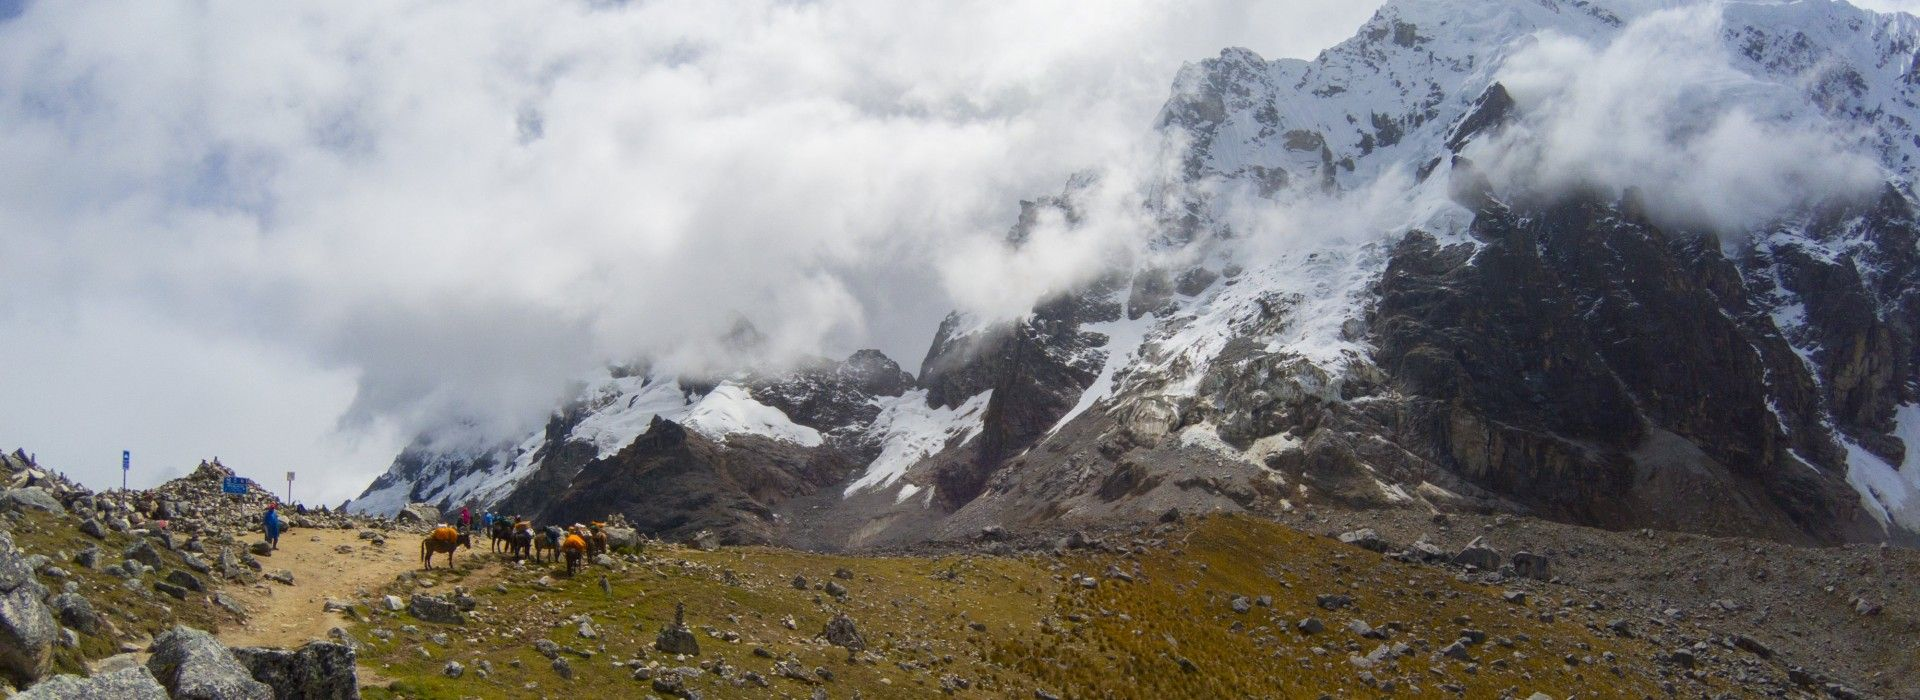 Special interests and hobbies Tours in Peru